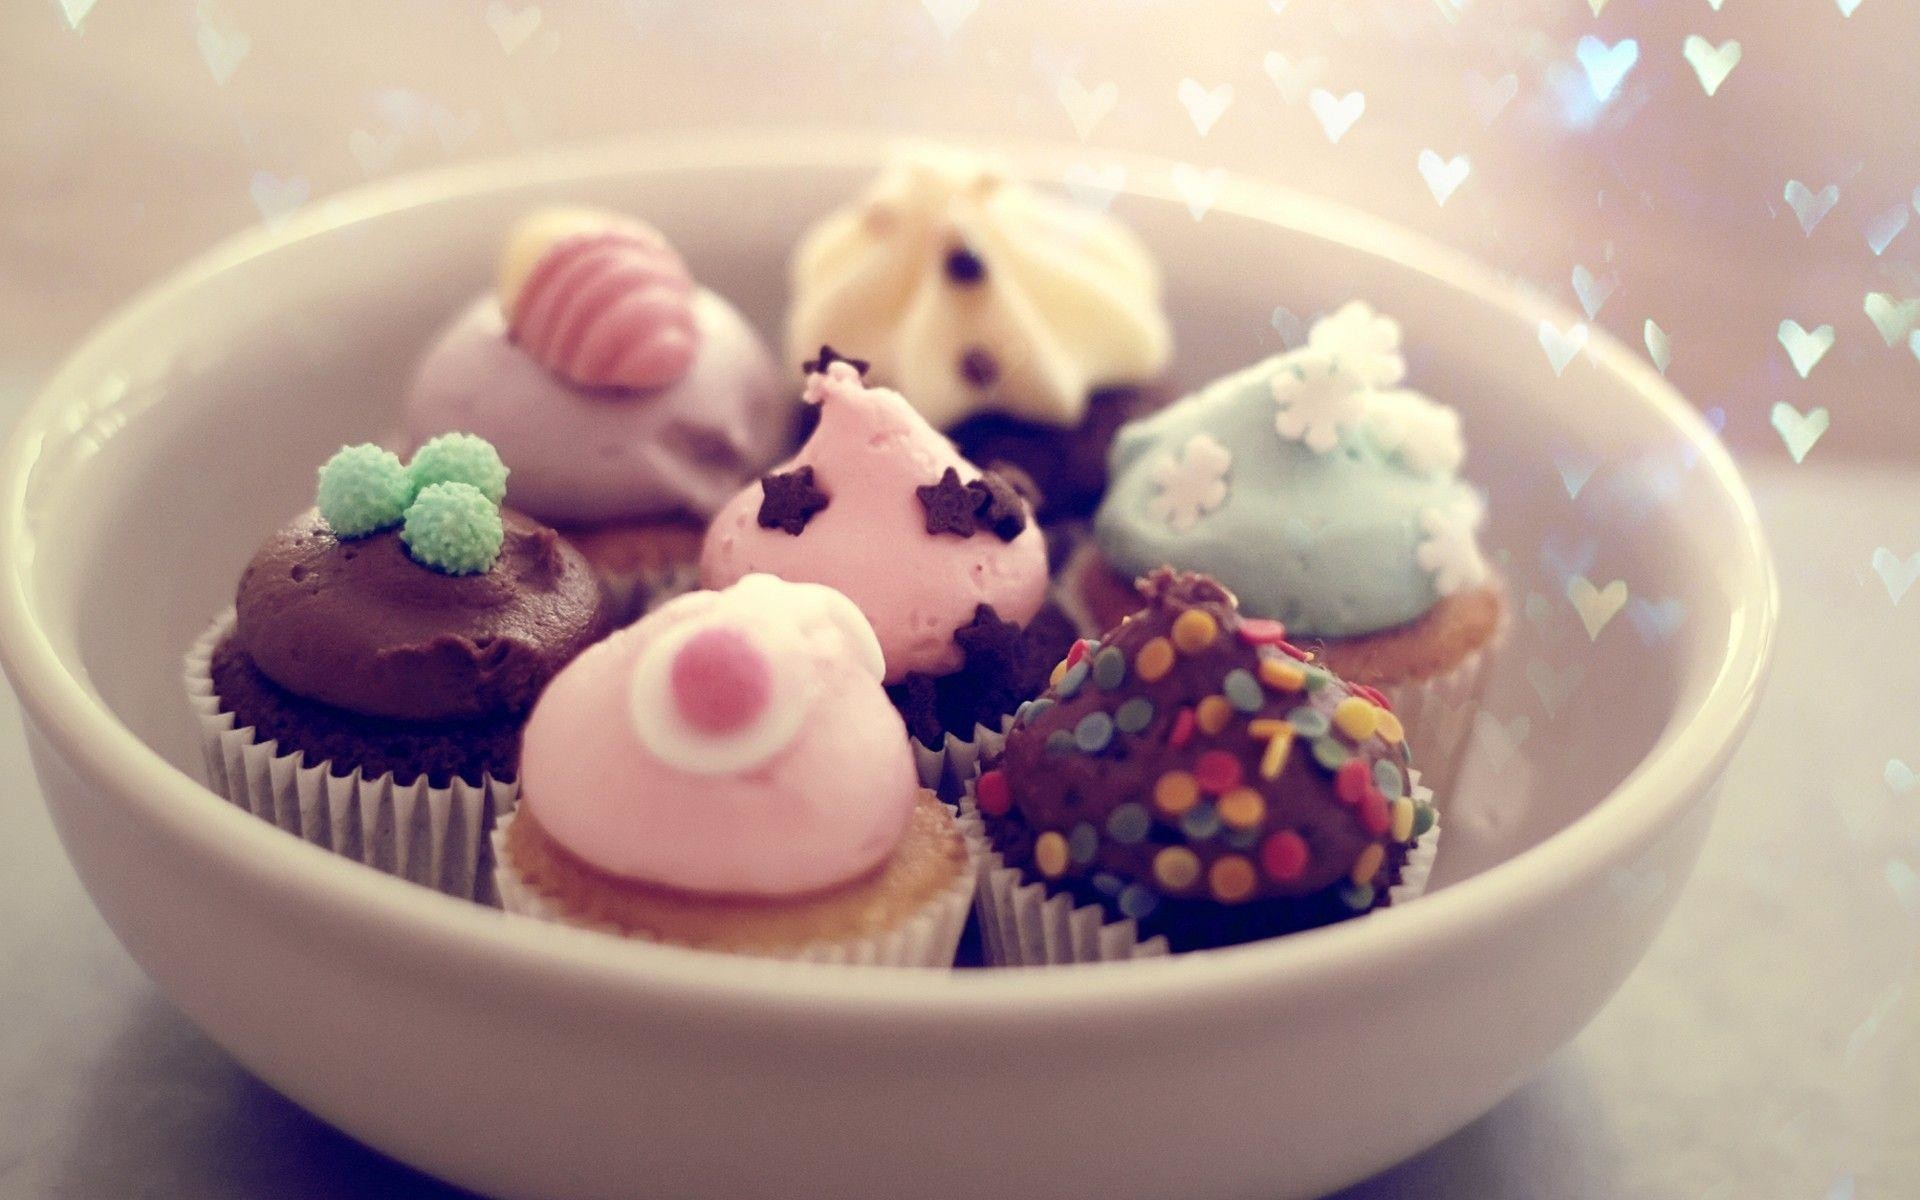 Res: 1920x1200, 30 Cupcake Wallpapers and Desktop Backgrounds   Solo Foods